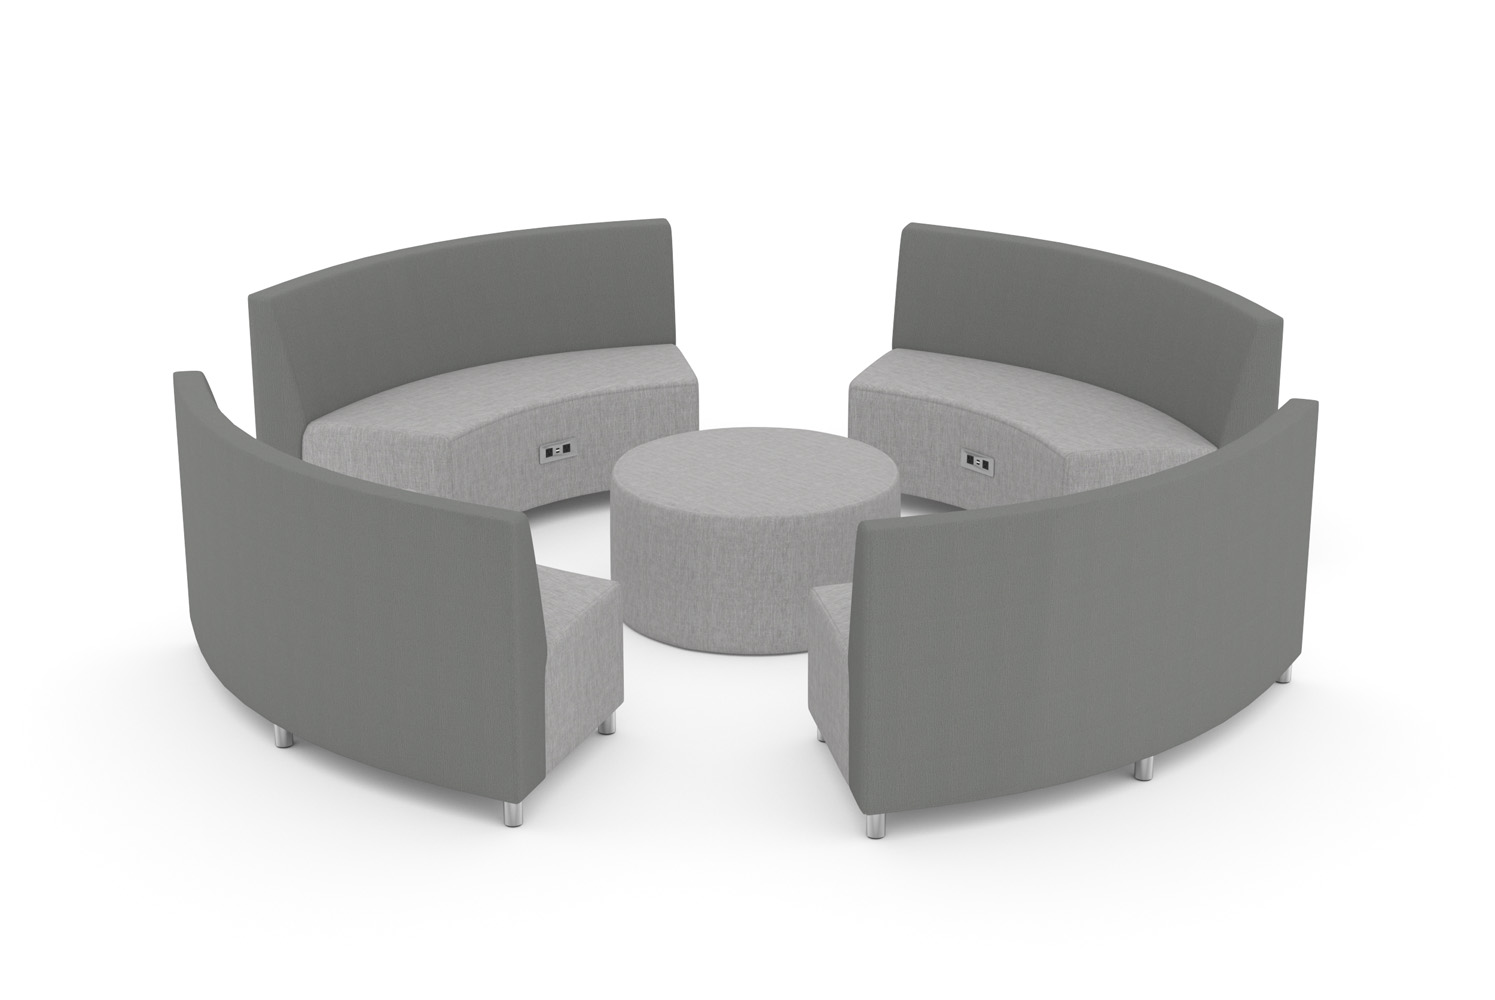 Raven, Modular, Circular Configuration, Cabana Table